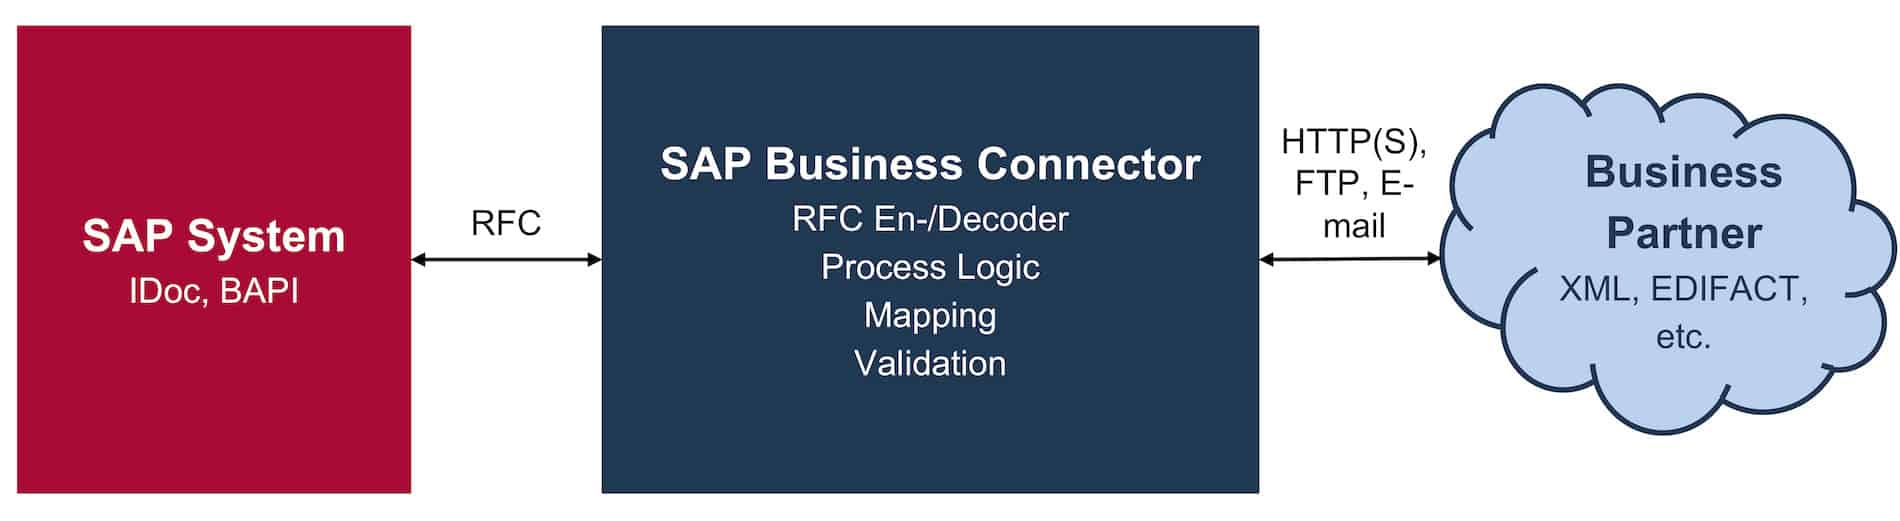 Document Exchange with the Help of the SAP Business Connector